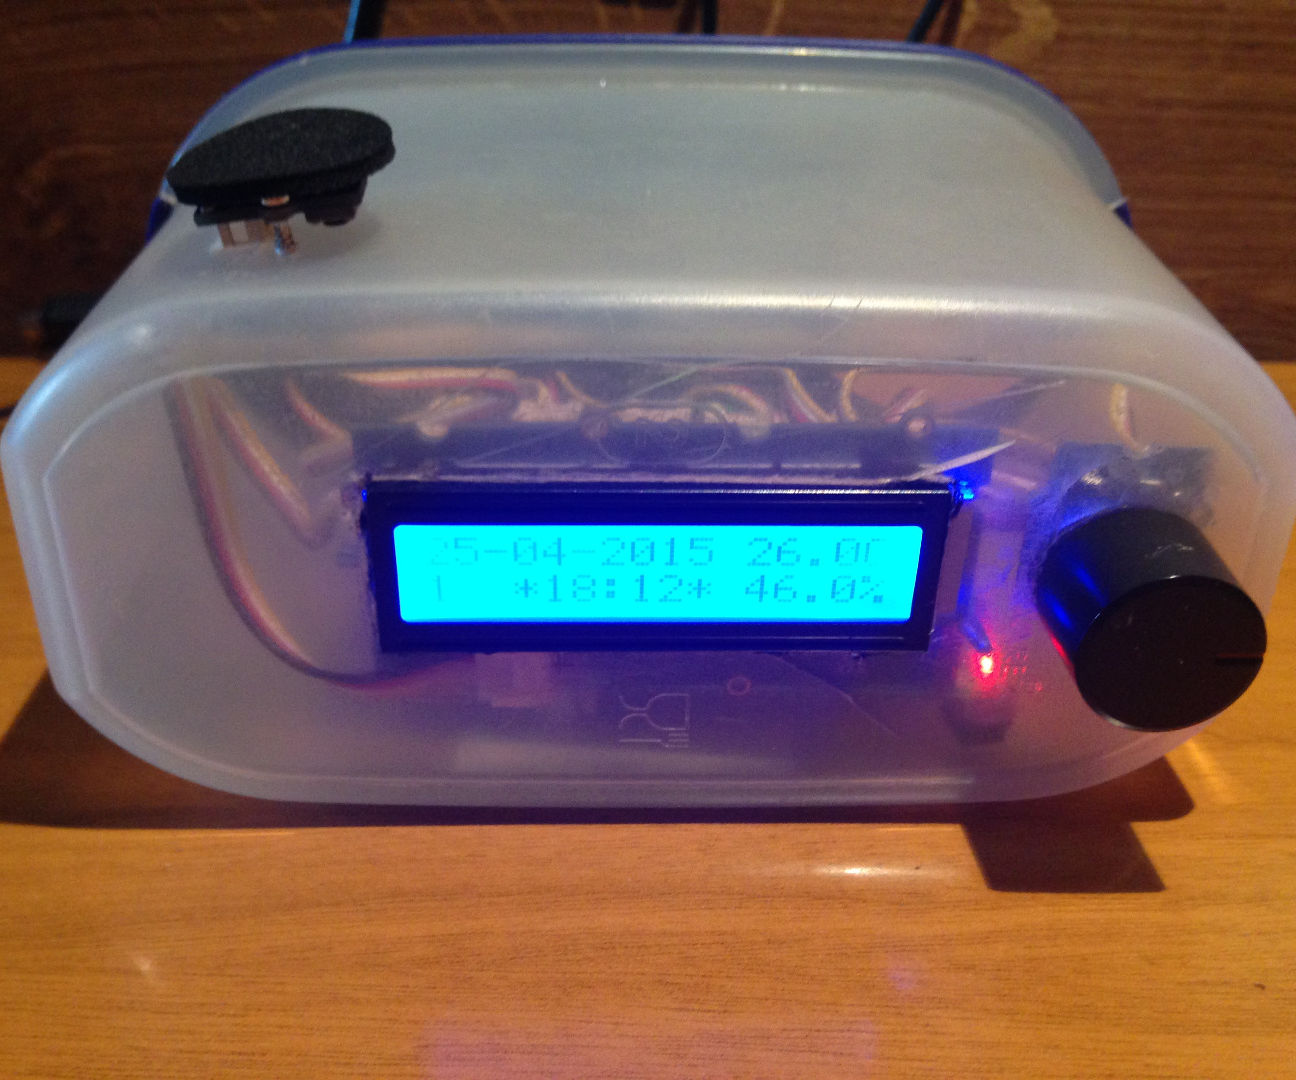 IT - RaspberryPI alarm clock